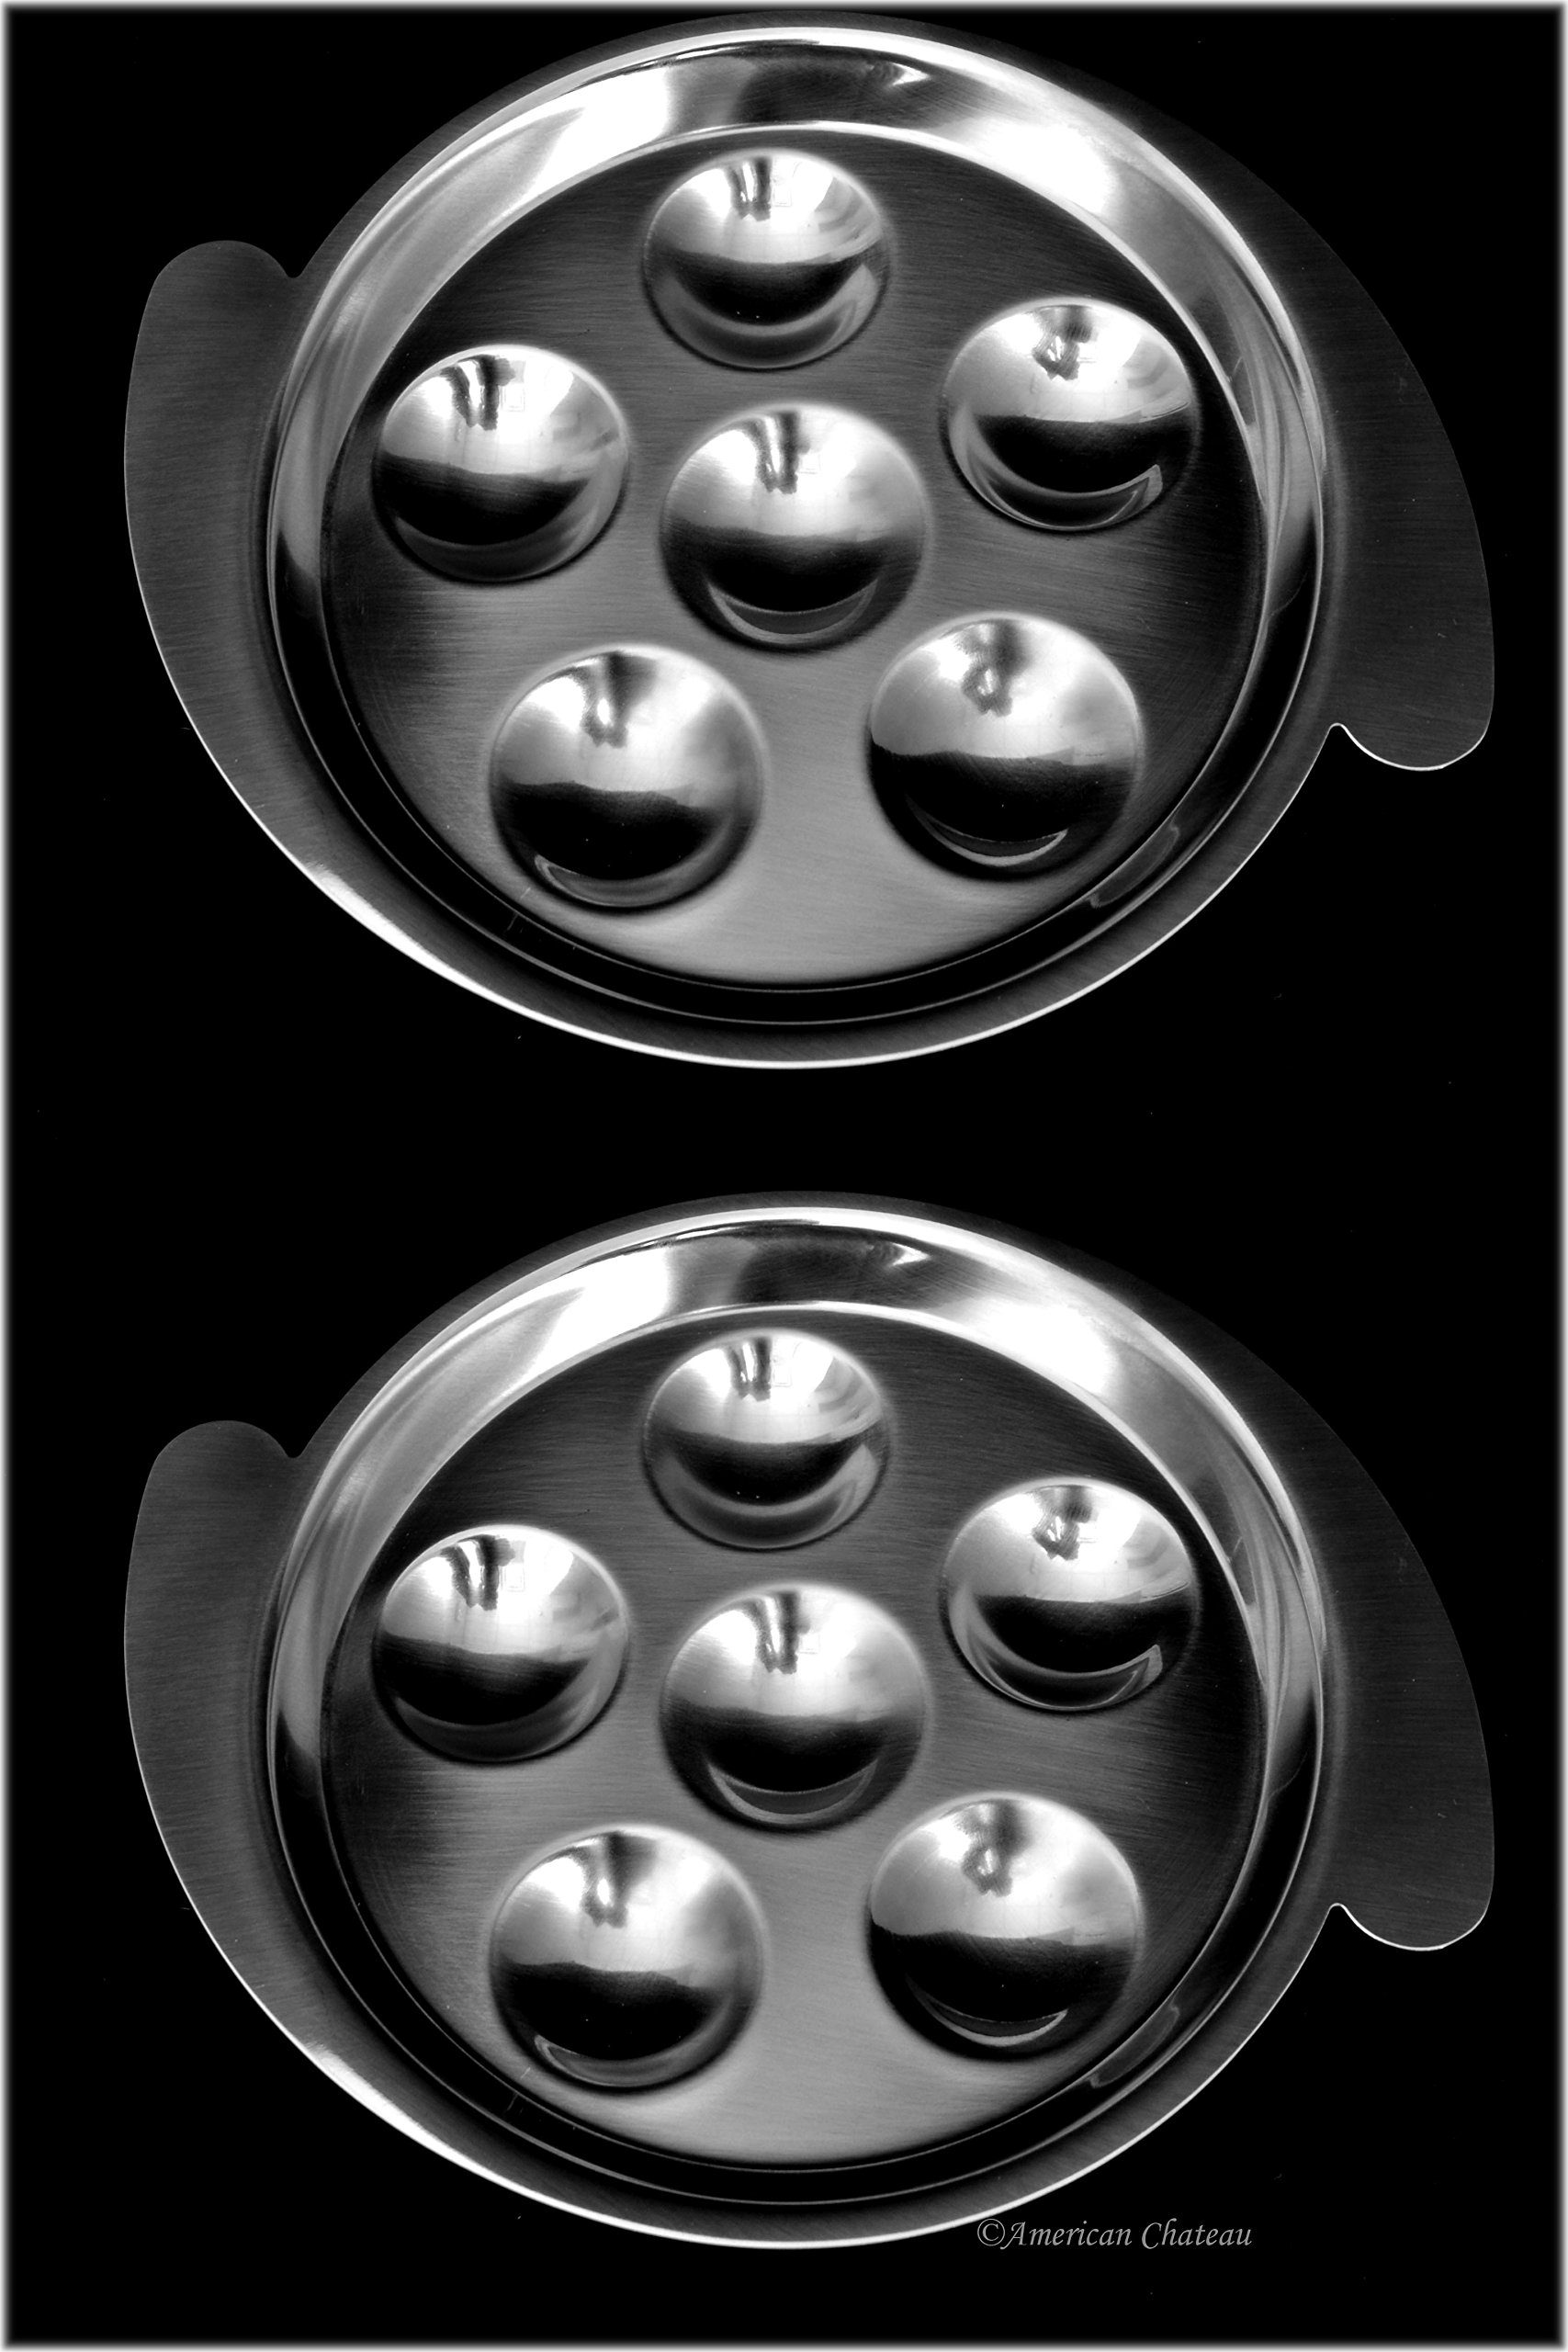 Set 2 Stainless Steel Snail Mushroom Escargot Baking Plate Dishes with Handles